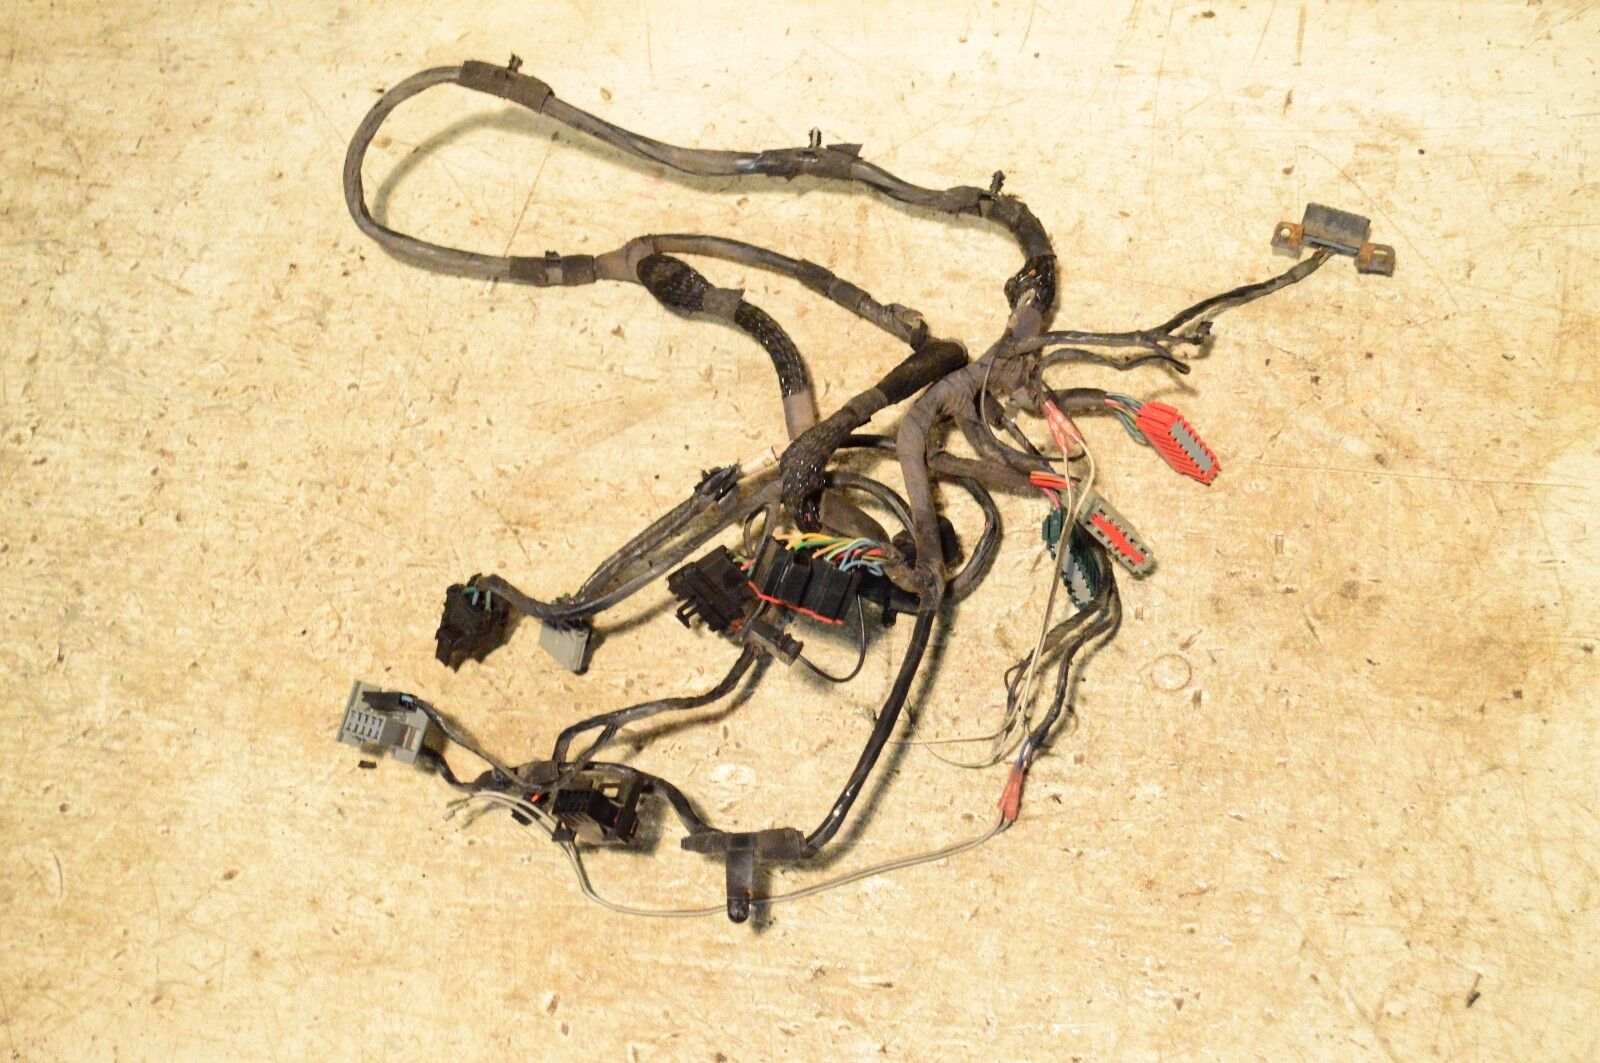 Used 1997 Jeep Wrangler Engines And Components For Sale 89 Dash Wiring Harness Tj Heater Ac Late Soft Top 97e